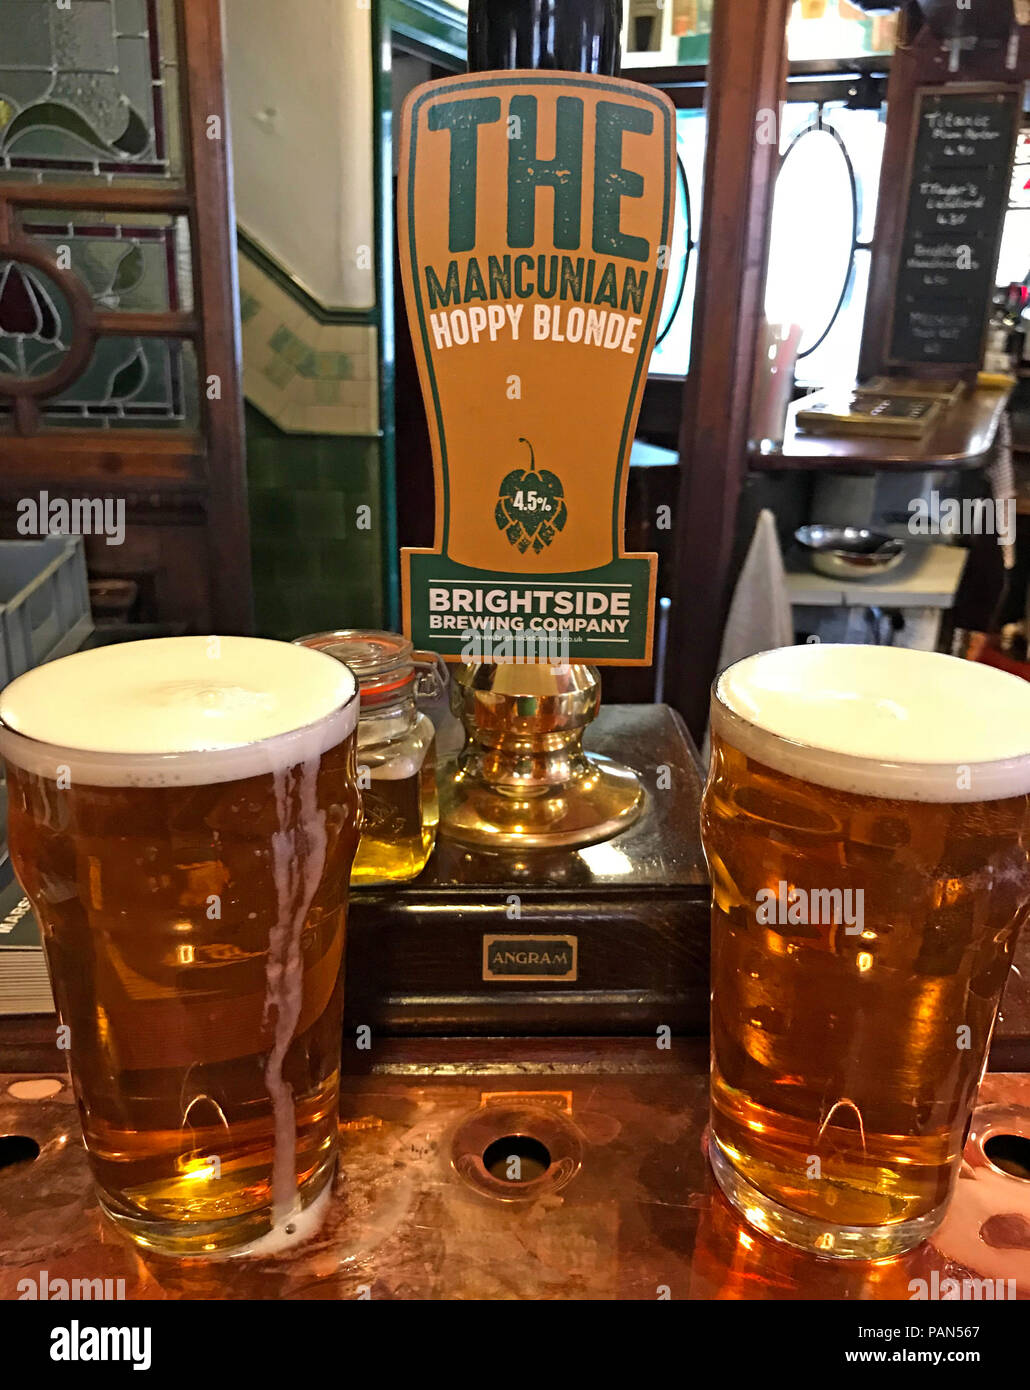 Two pints of Brightside Mancunian Hoppy Blond real ale, on a bar, Manchester,North West England, UK - Stock Image